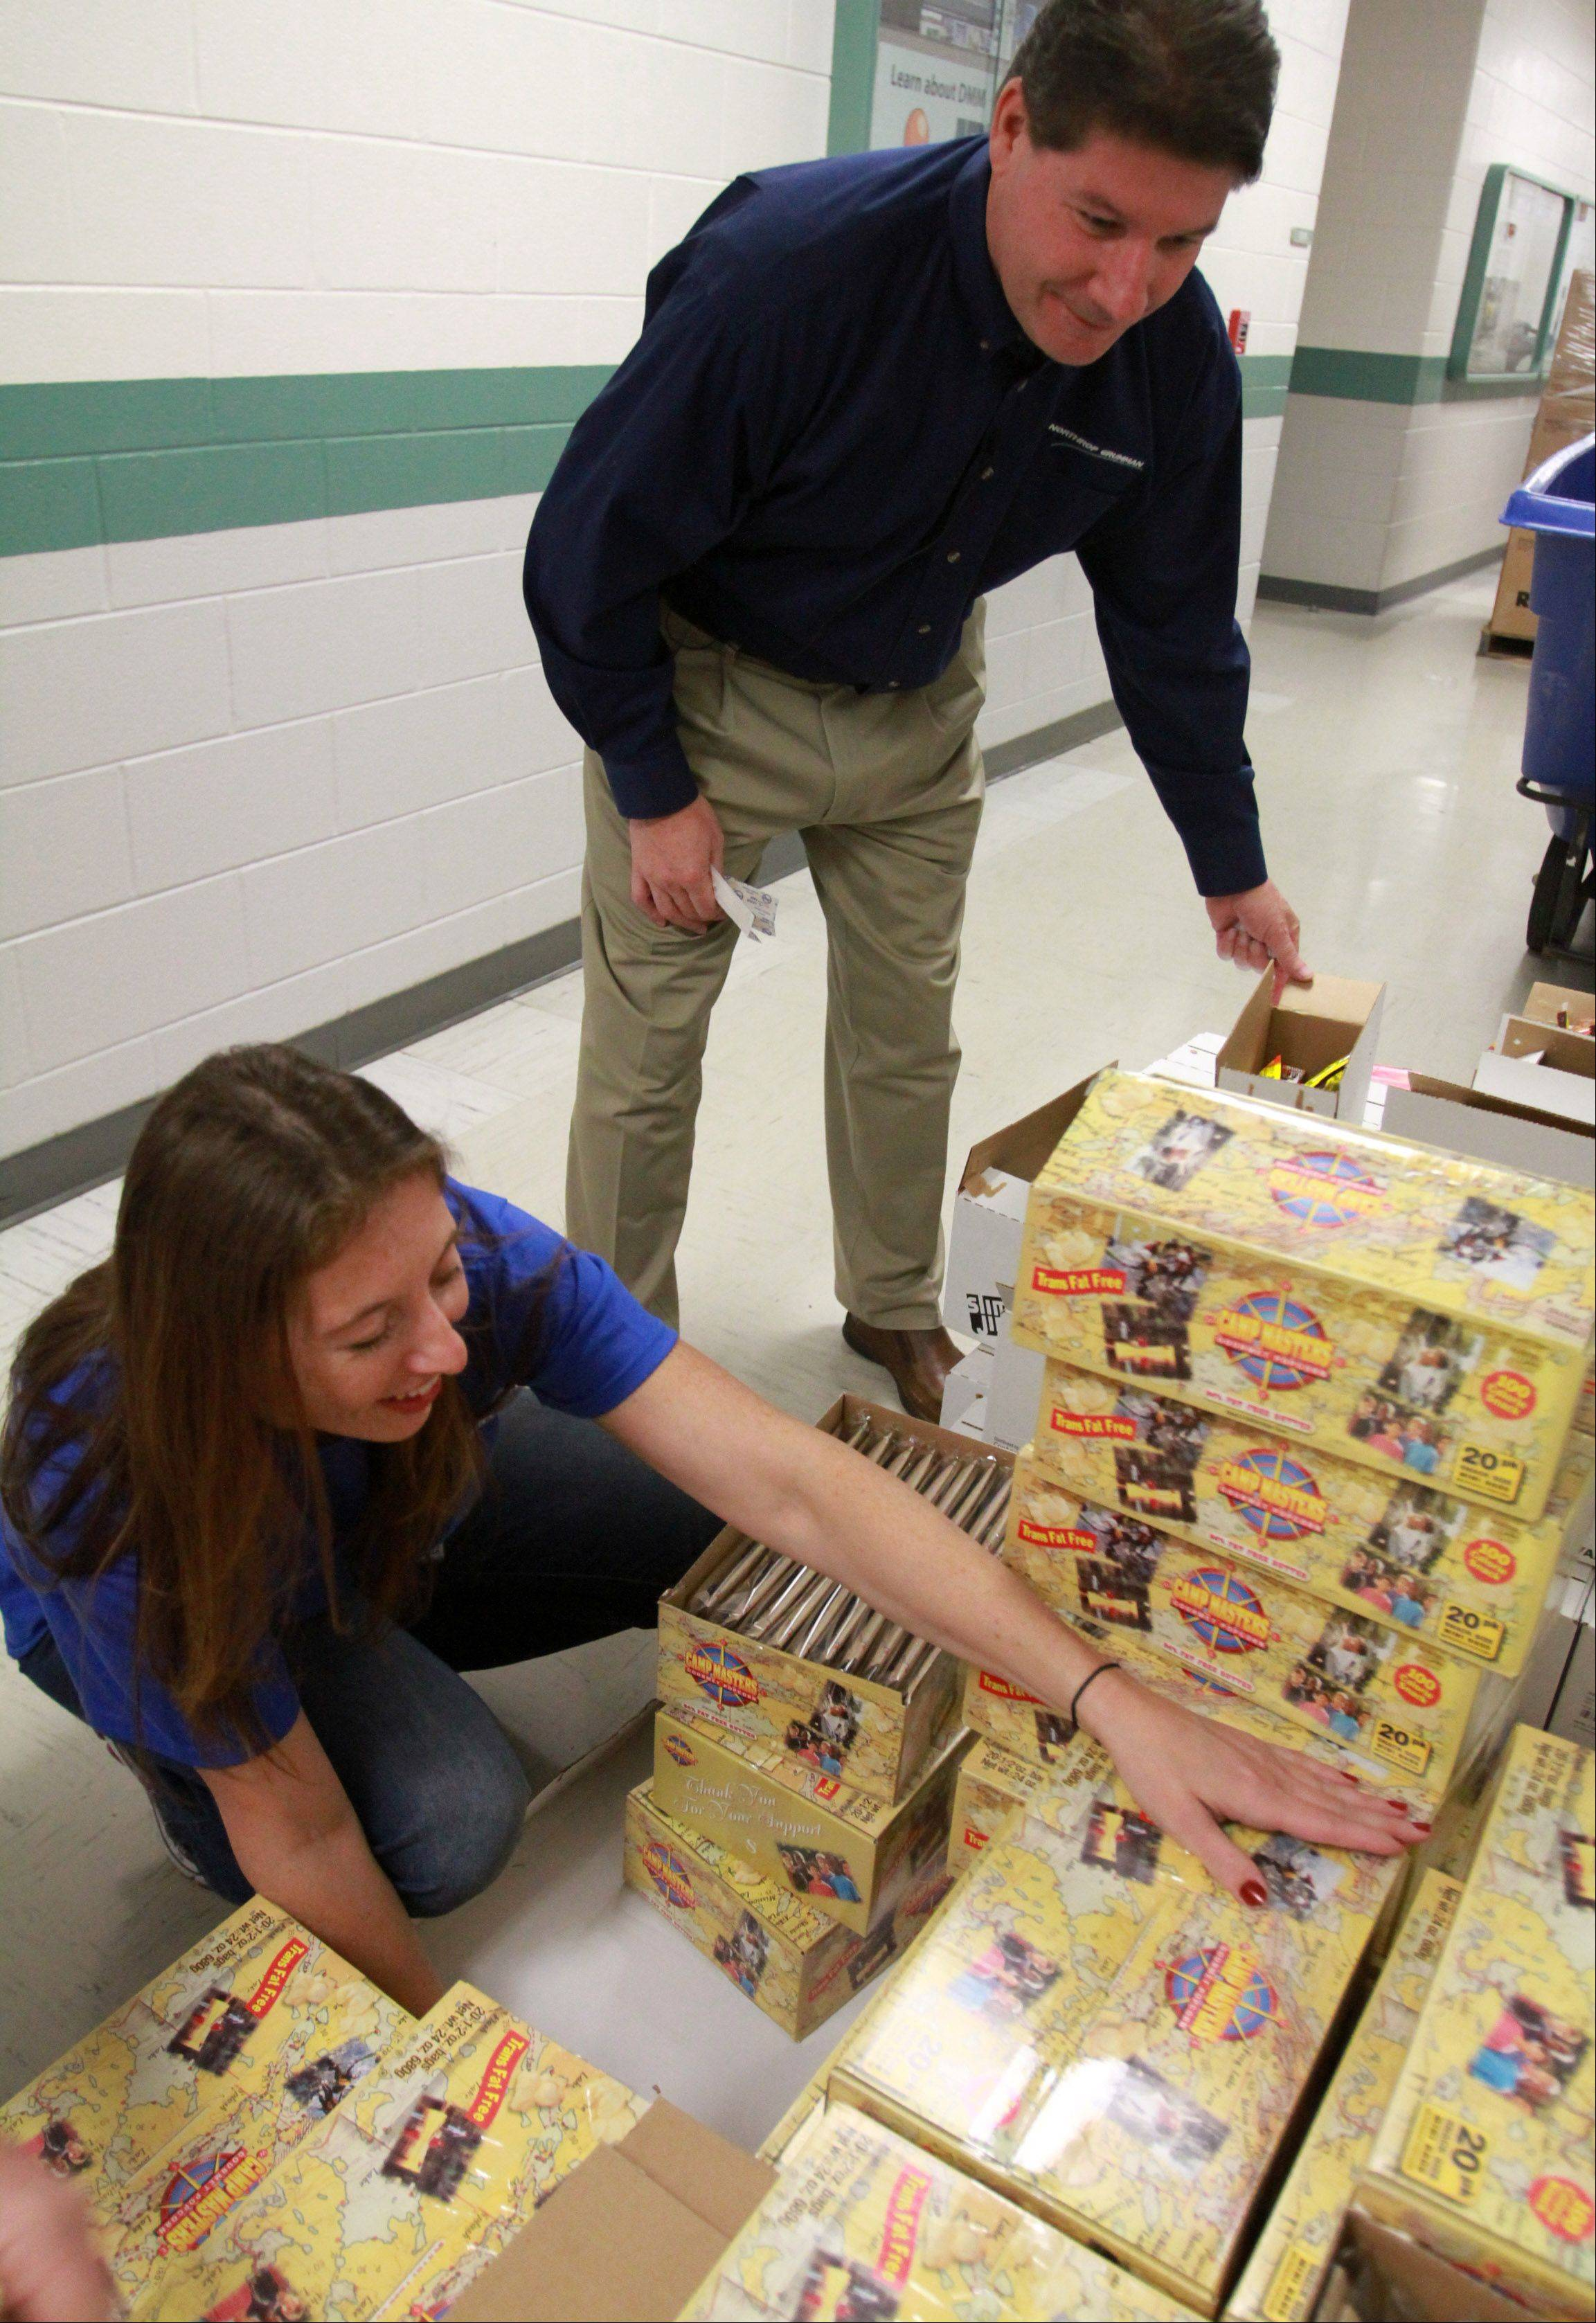 Jeffrey Palombo, sector vice president of Northrop Grumman, and employee Nadine DiSpirito of Arlington Heights unpack items to be stuffed into USO care packages at the company offices in Rolling Meadows on Saturday.